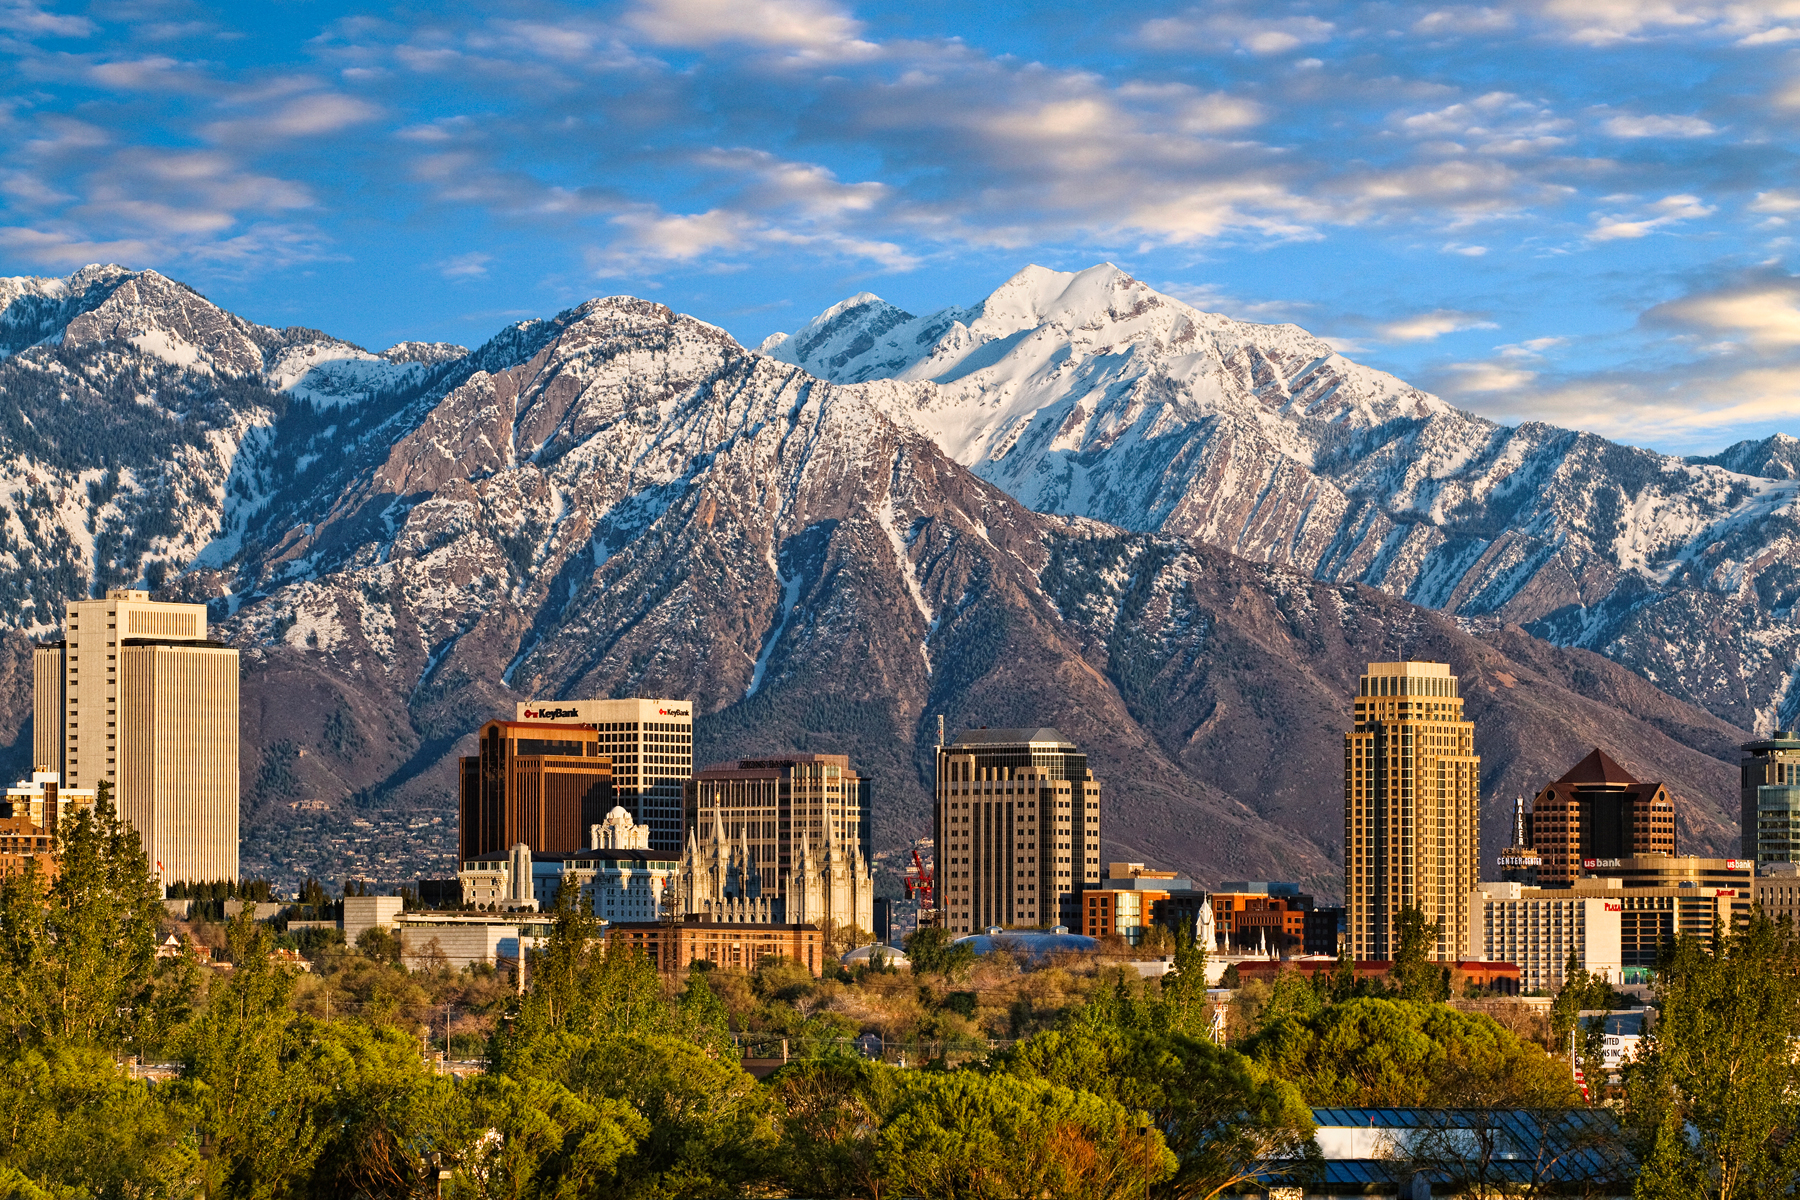 South Denver Valley Hope Outpatient in Englewoo Colorado